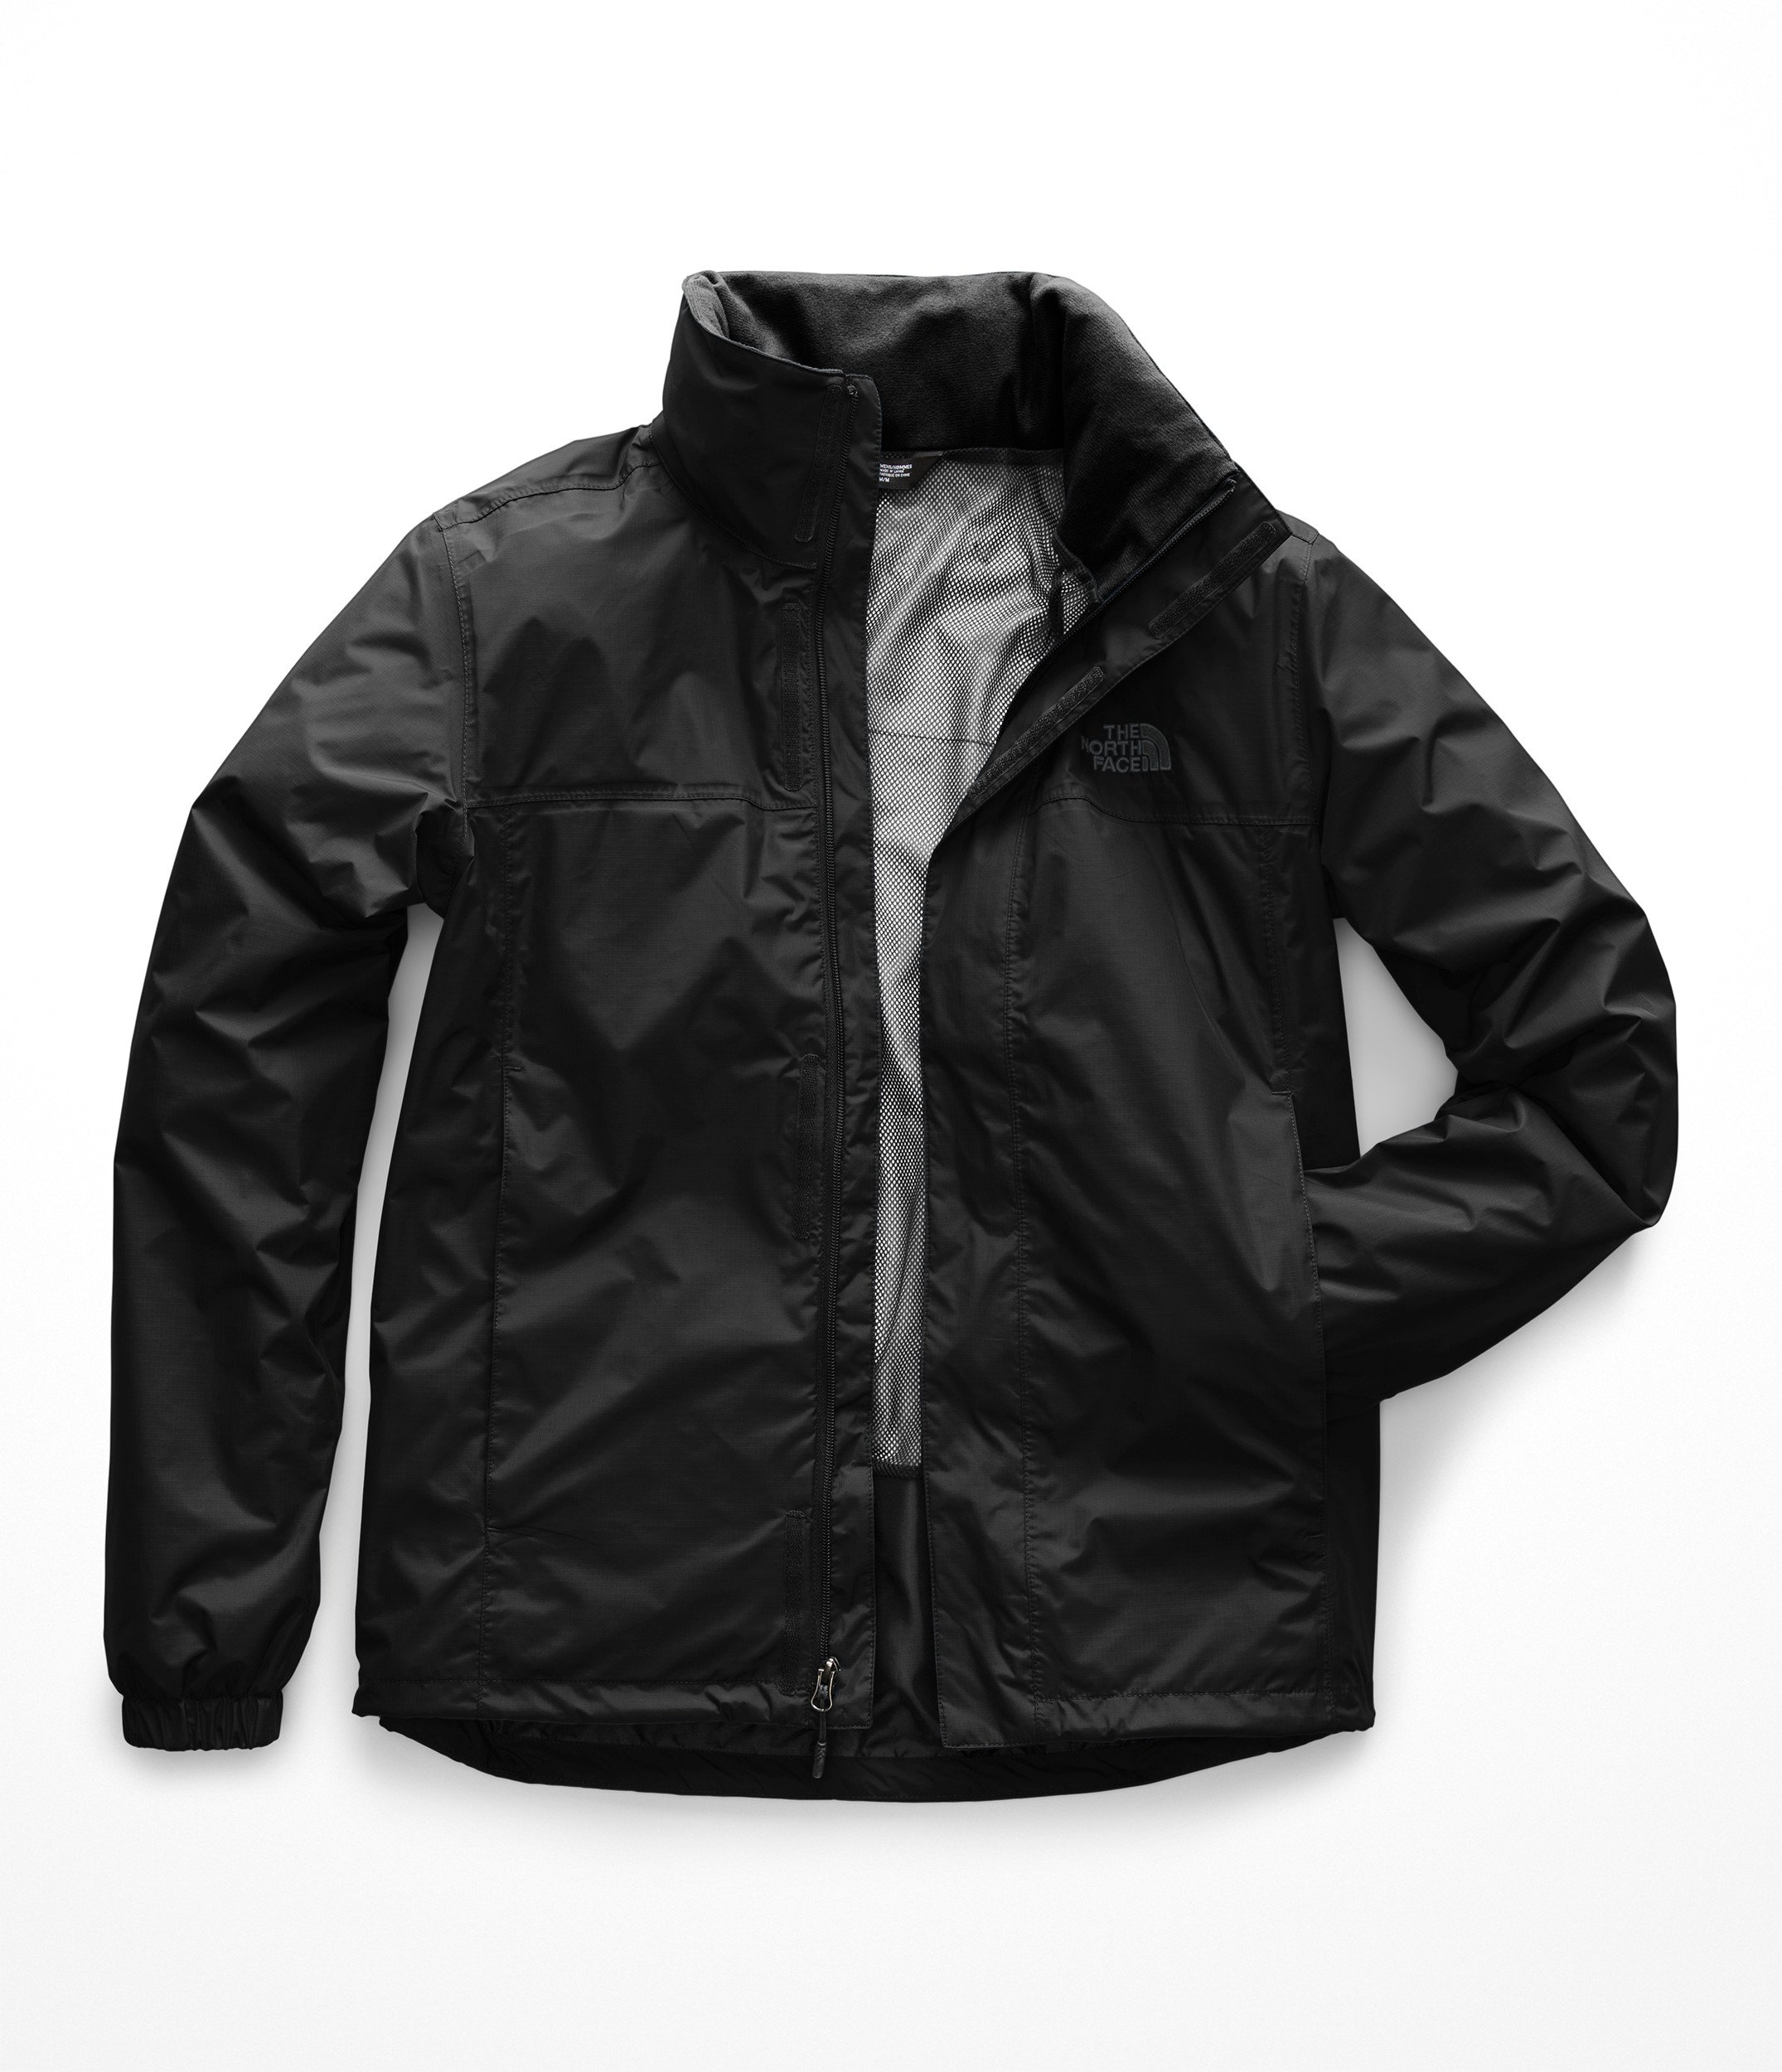 The North Face Men's Resolve 2 Jacket - TNF Black & TNF Black - XXL by The North Face